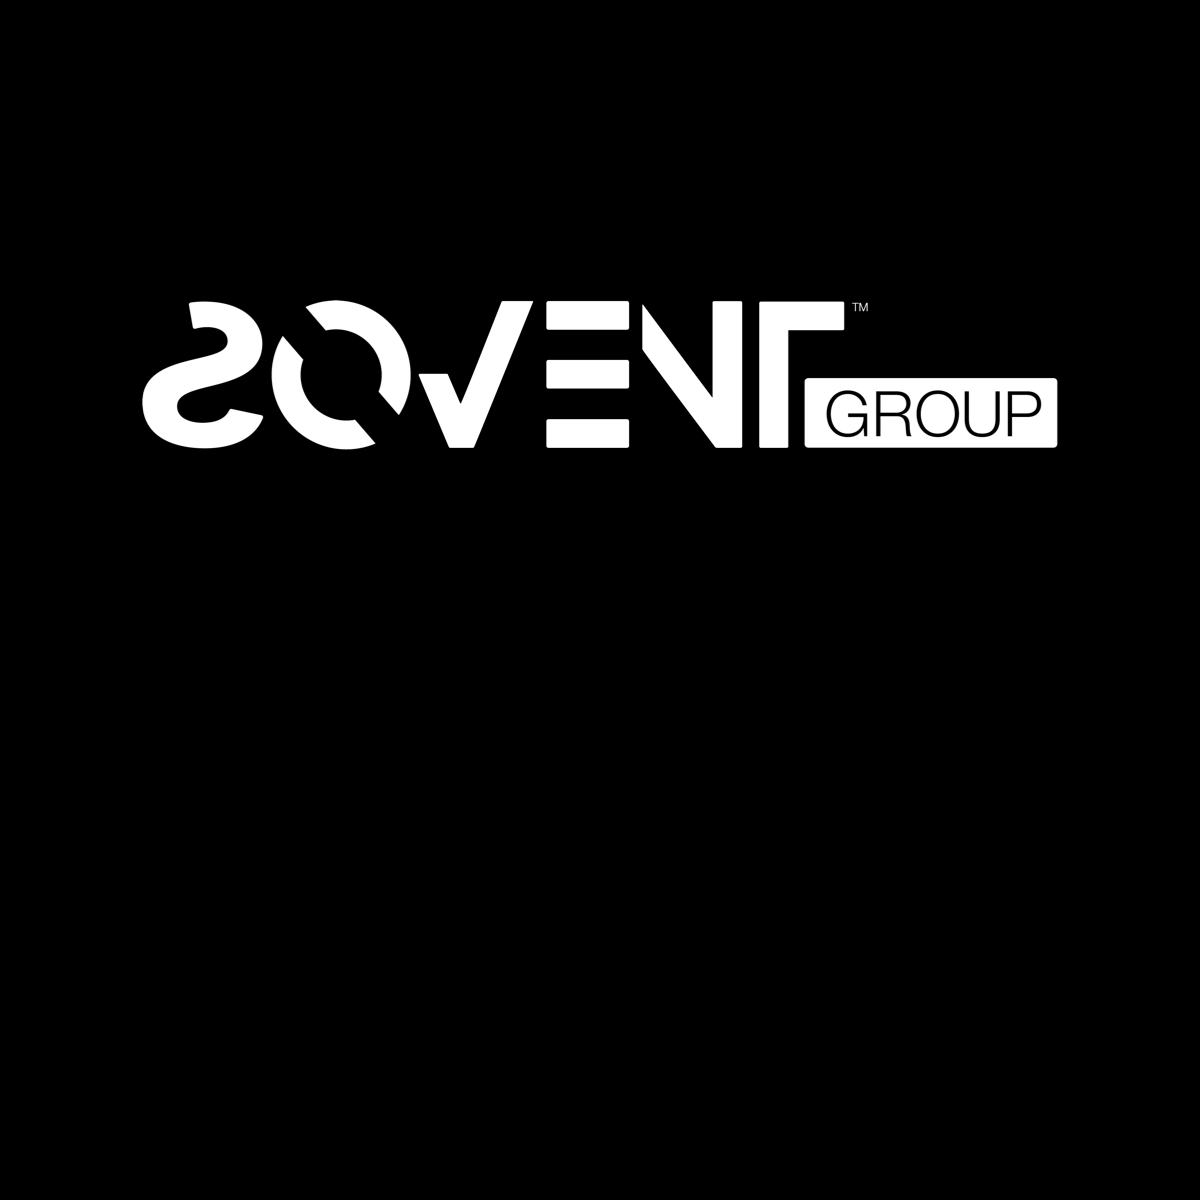 SoVent Group